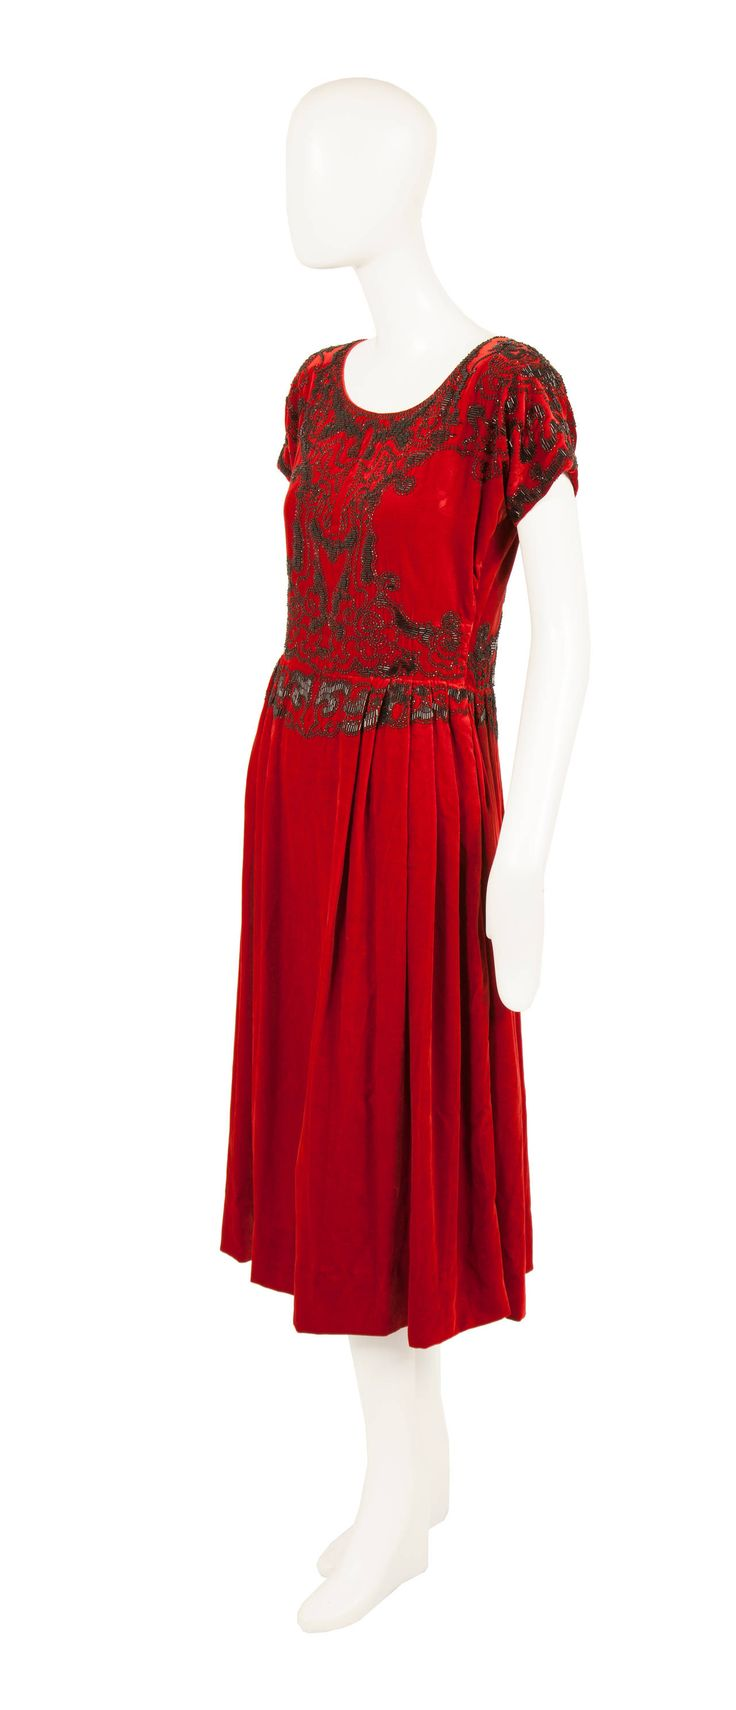 Paul Poiret Haute Couture Red Silk Velvet Dress, circa 1925 ruby red silk velvet, the dress is intricately embroidered with black glass bugle beads on the body and capped sleeves, while the skirt is pleated around the waistline to create a gentle draping.